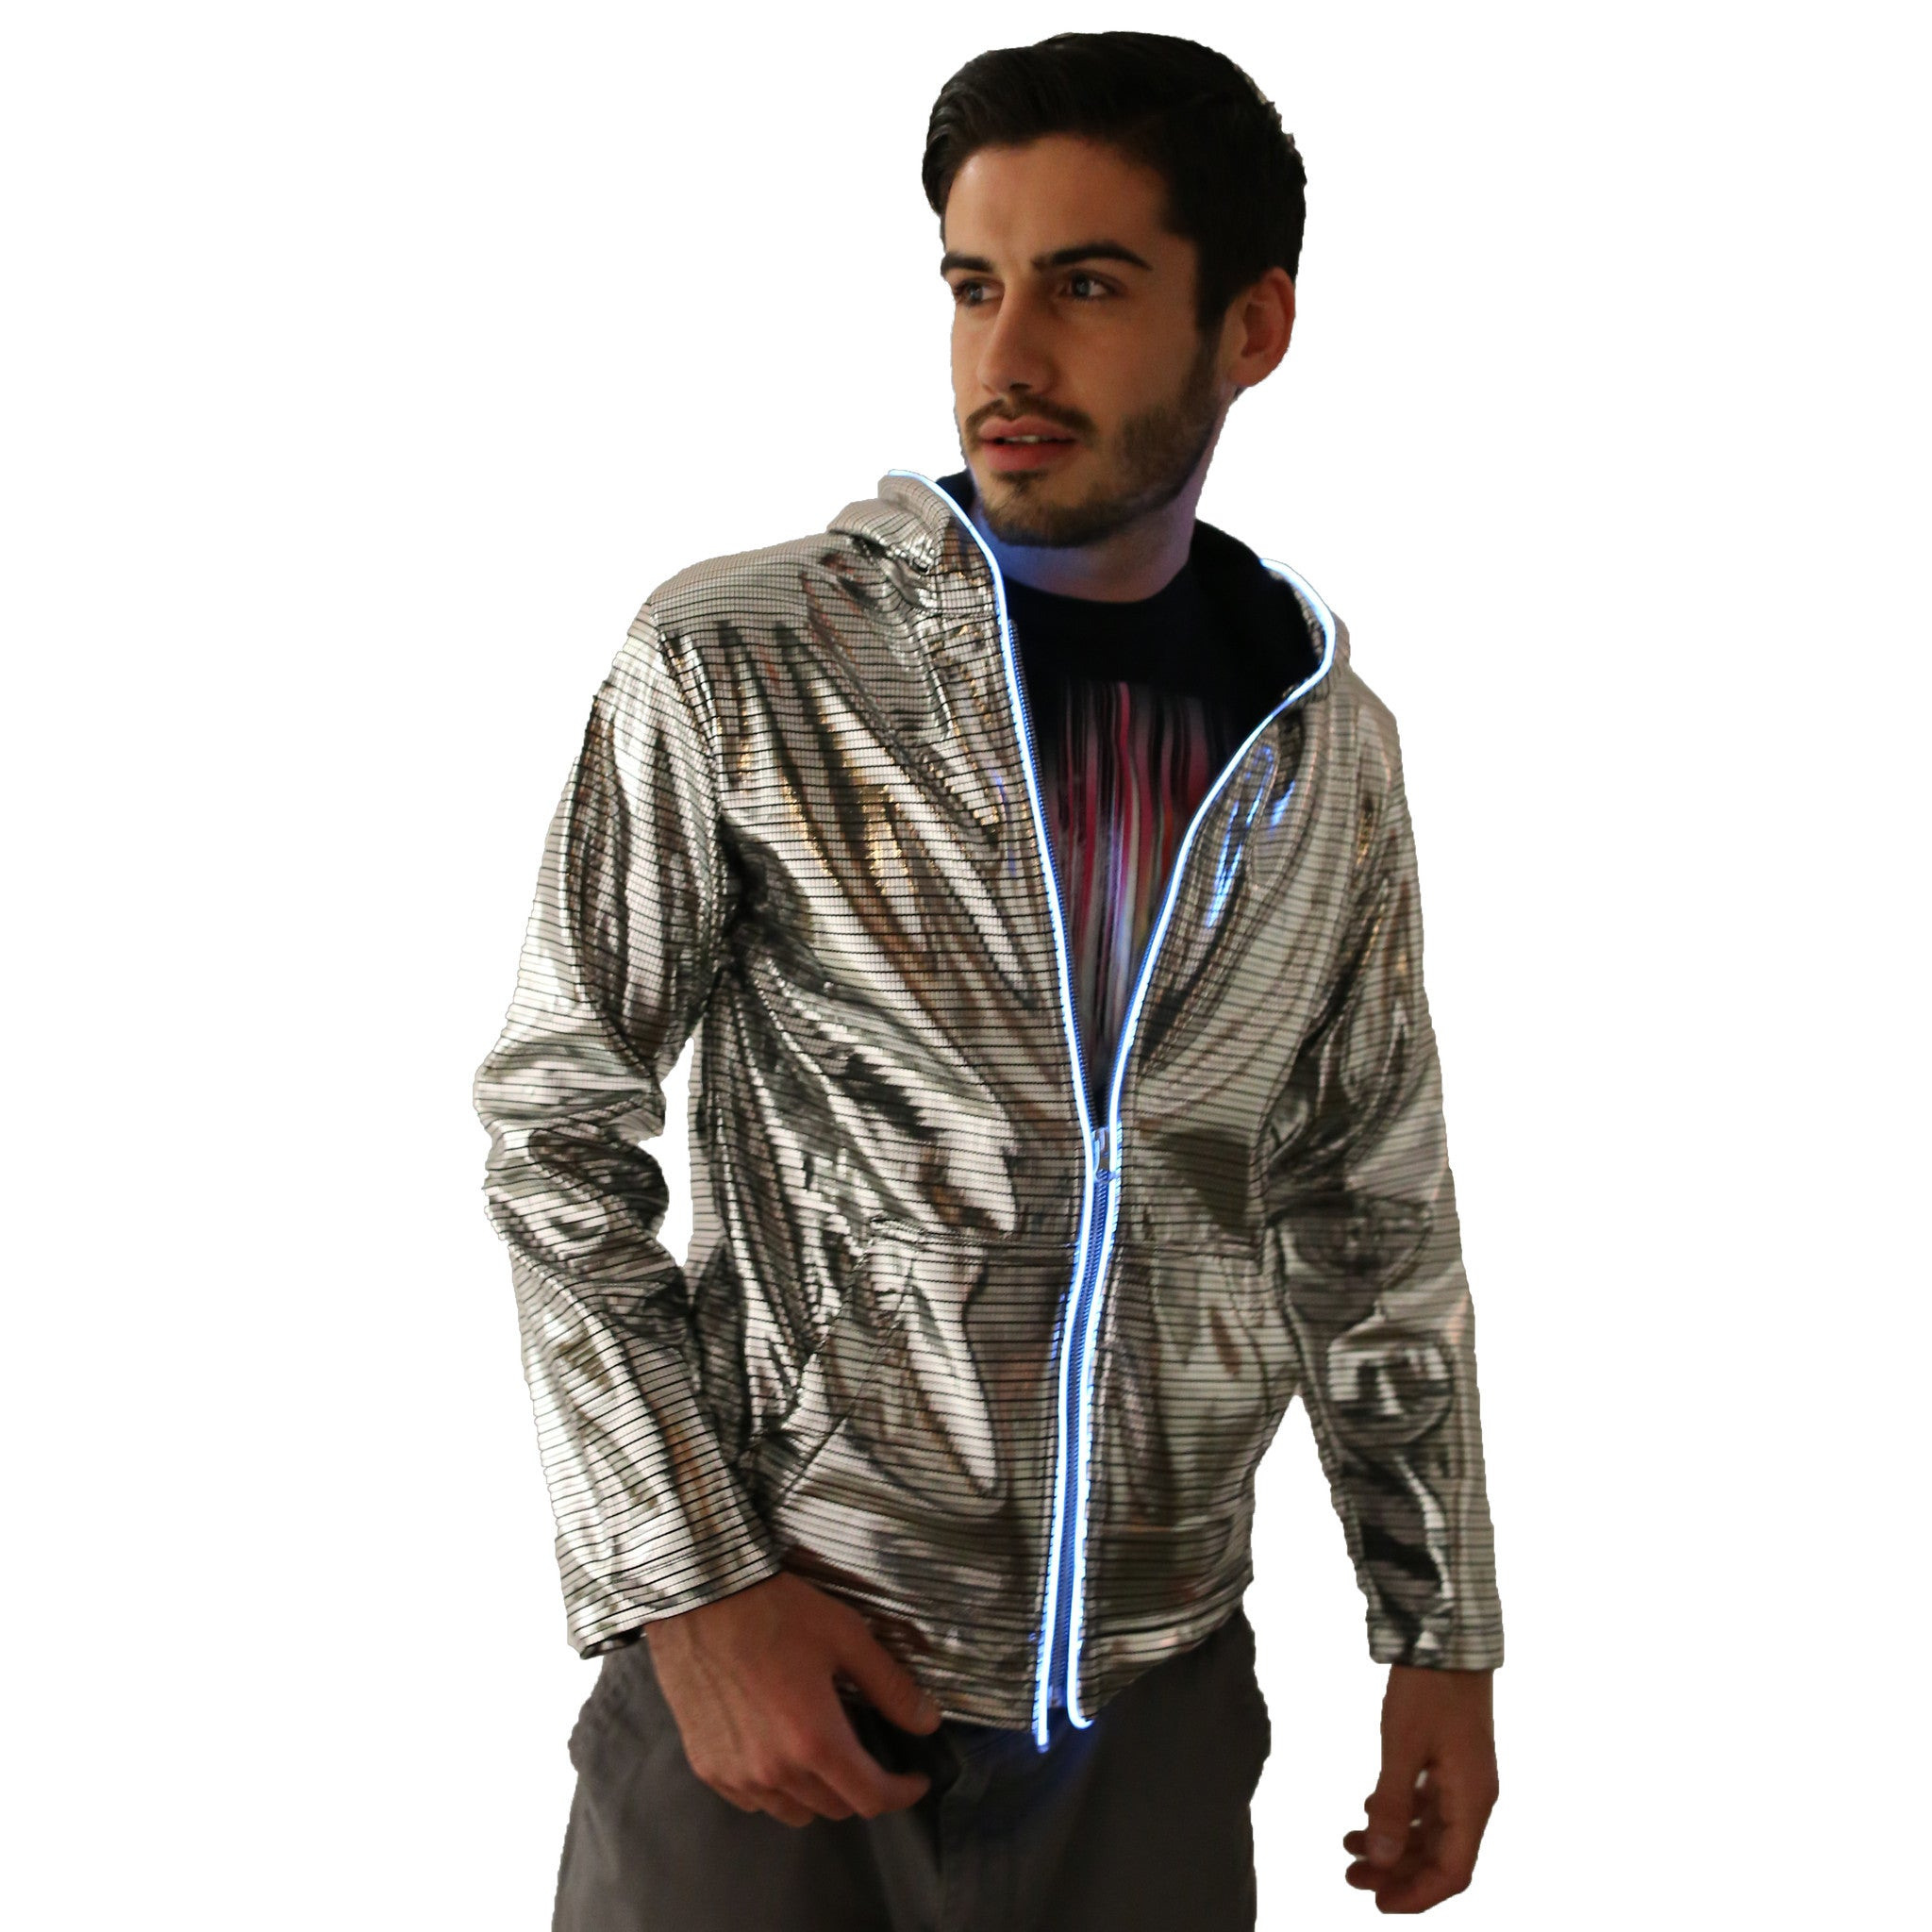 Light Up Electro Hoodie - Electric Styles | World's Number 1 Light Up Shoe Store - {product_type}} - Small / Silver - 4